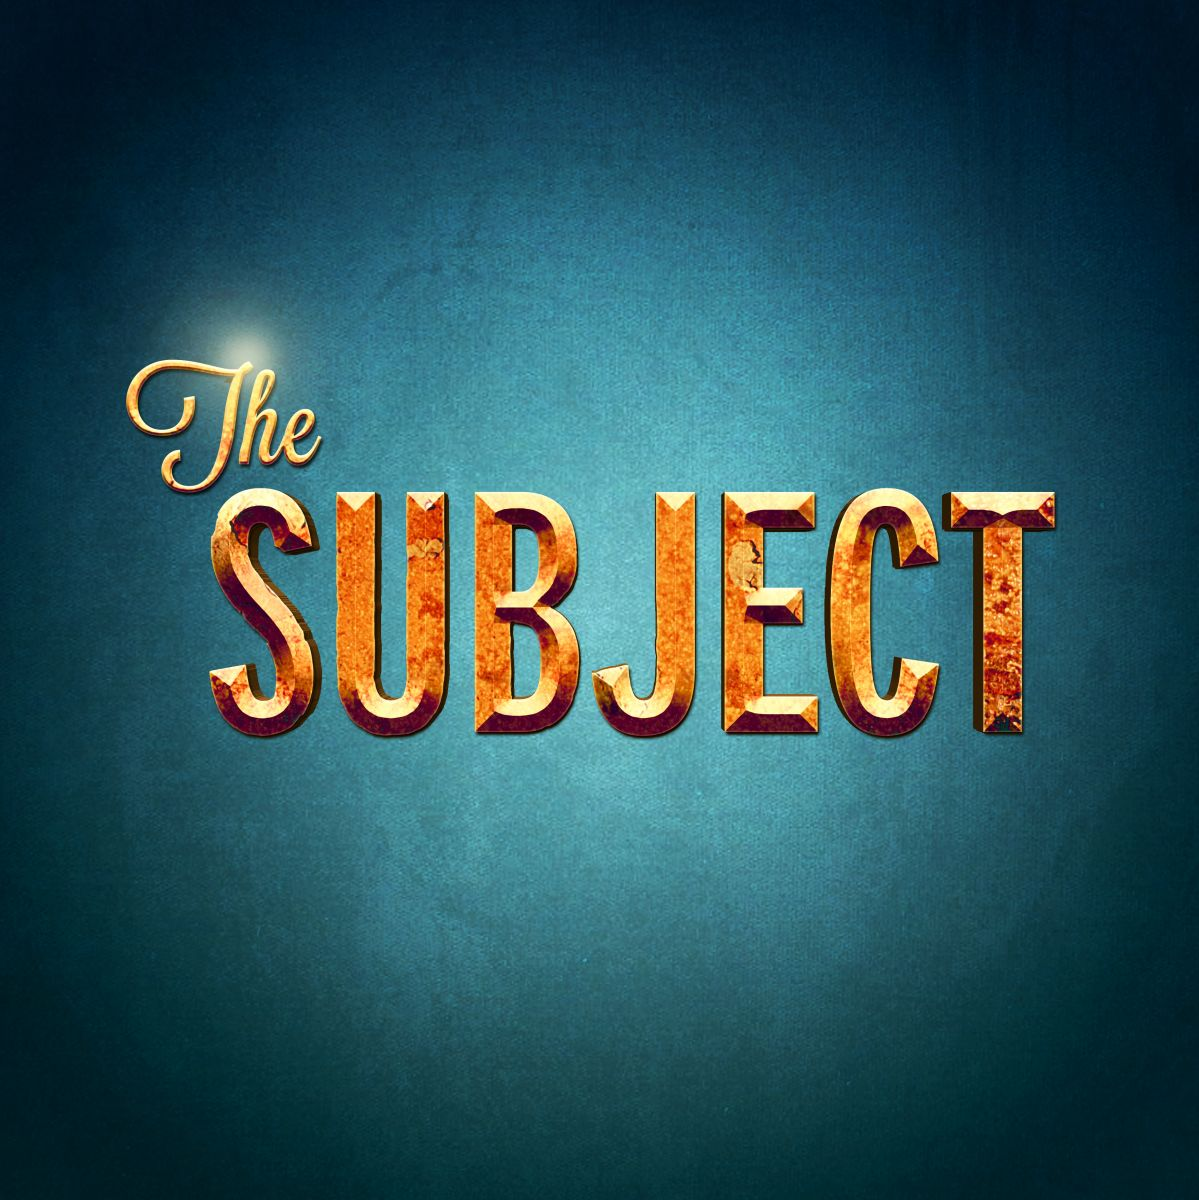 ANNOUNCEMENT: The Subject Upstairs at the Arts Theatre